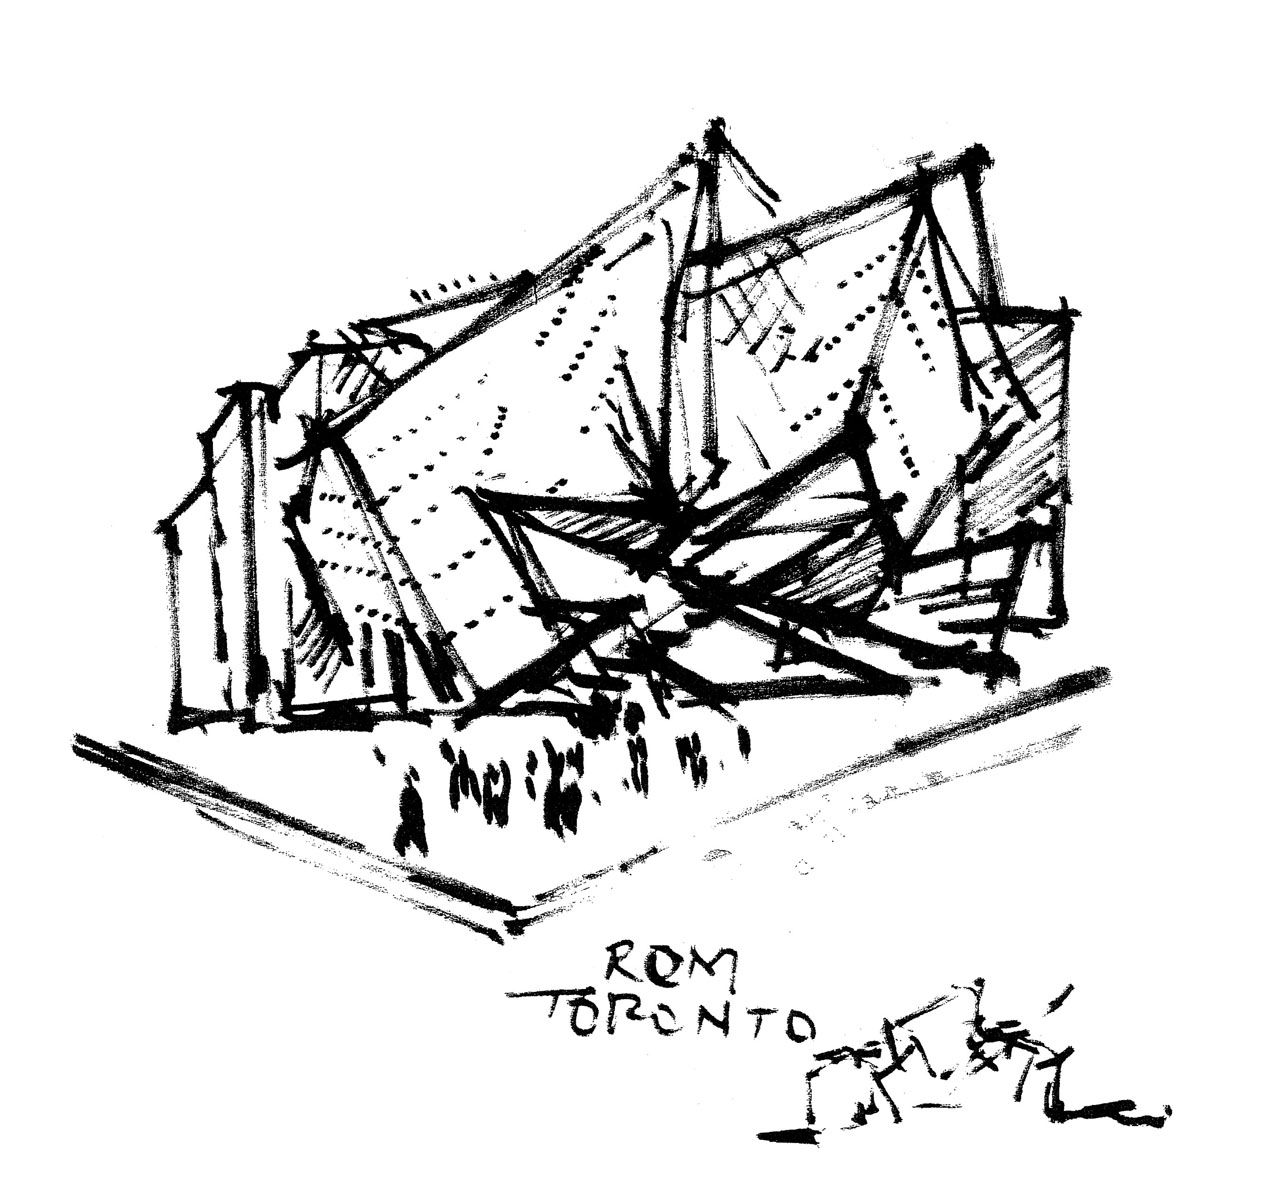 An imprecise drawing of a modern-looking building.